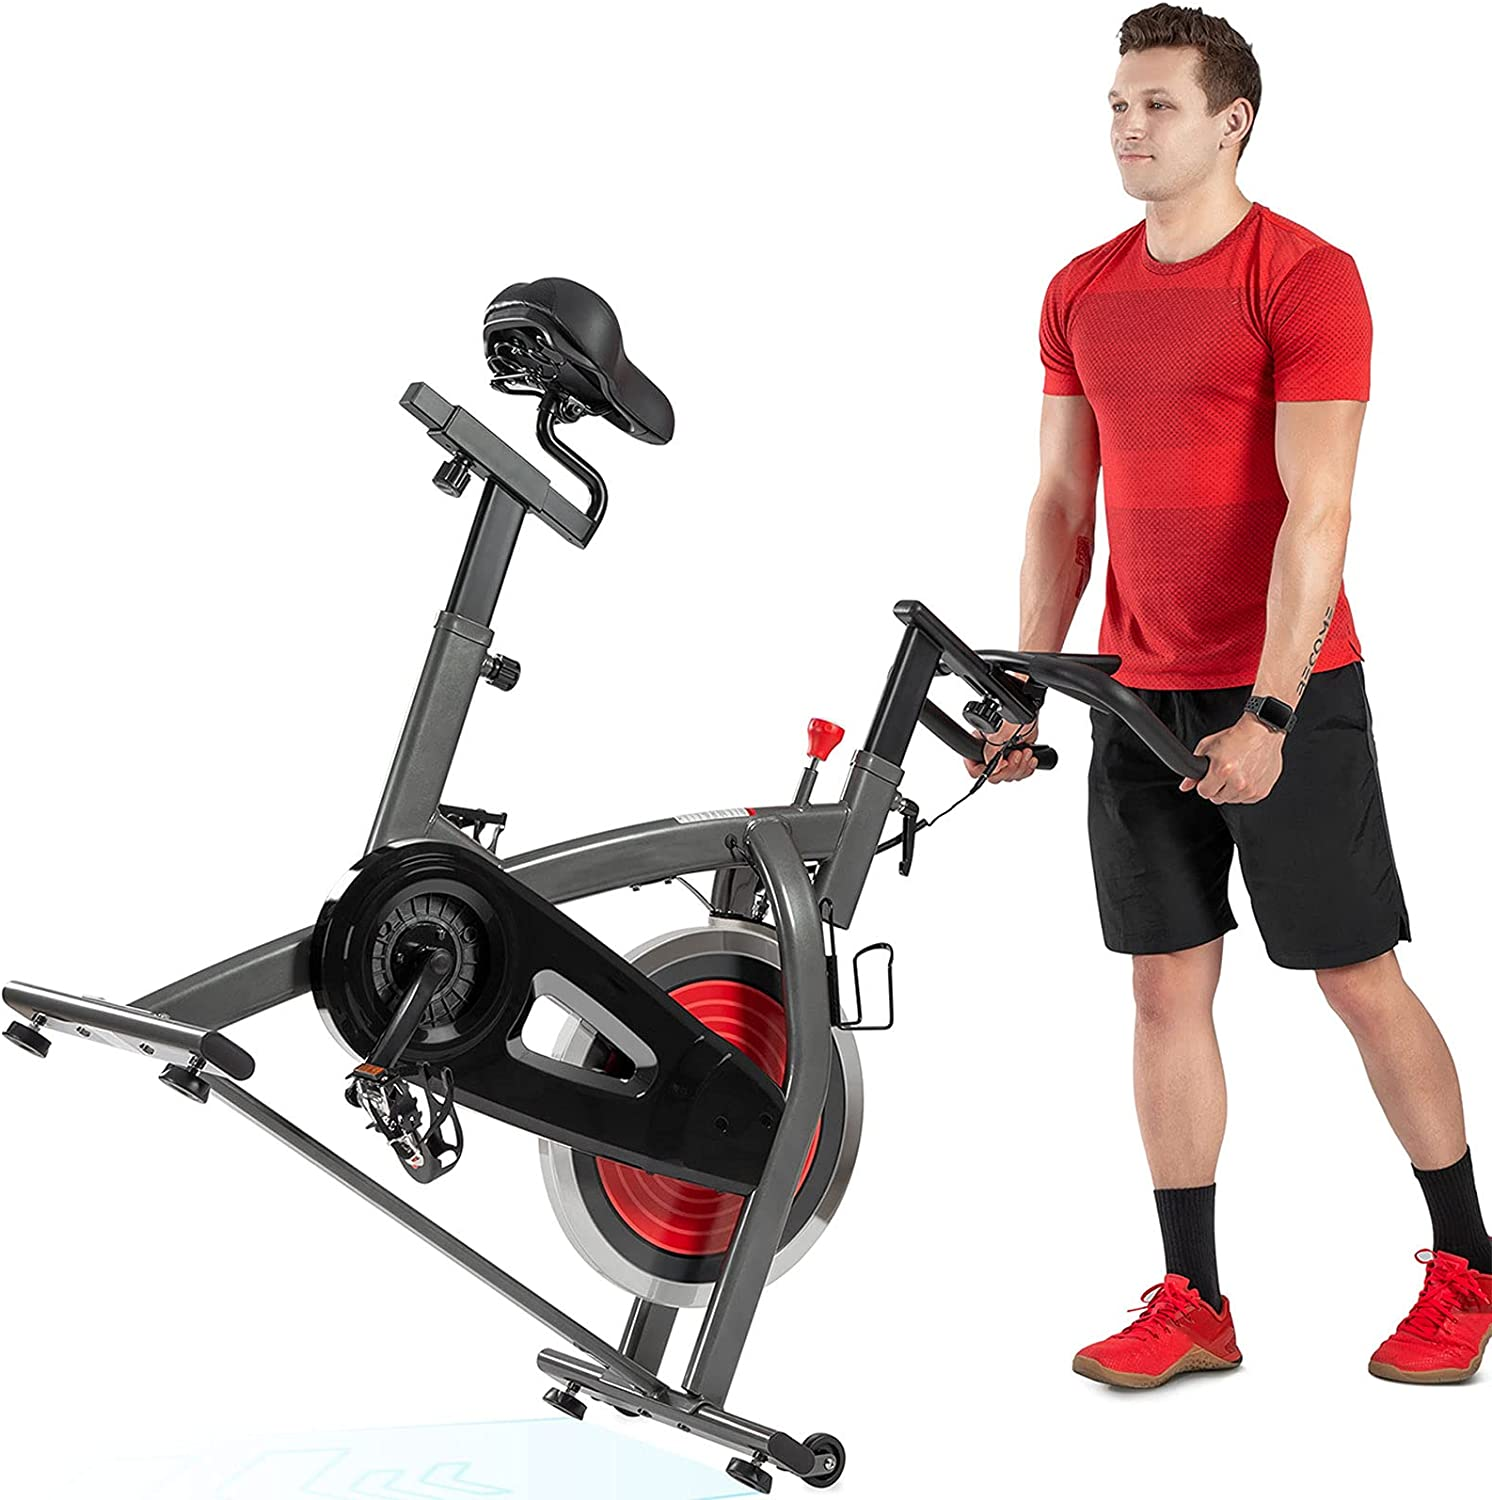 Exercise Bike for Home Gym Belt Drive Cycling Outlet SALE 4-Wa Indoor 70% OFF Outlet